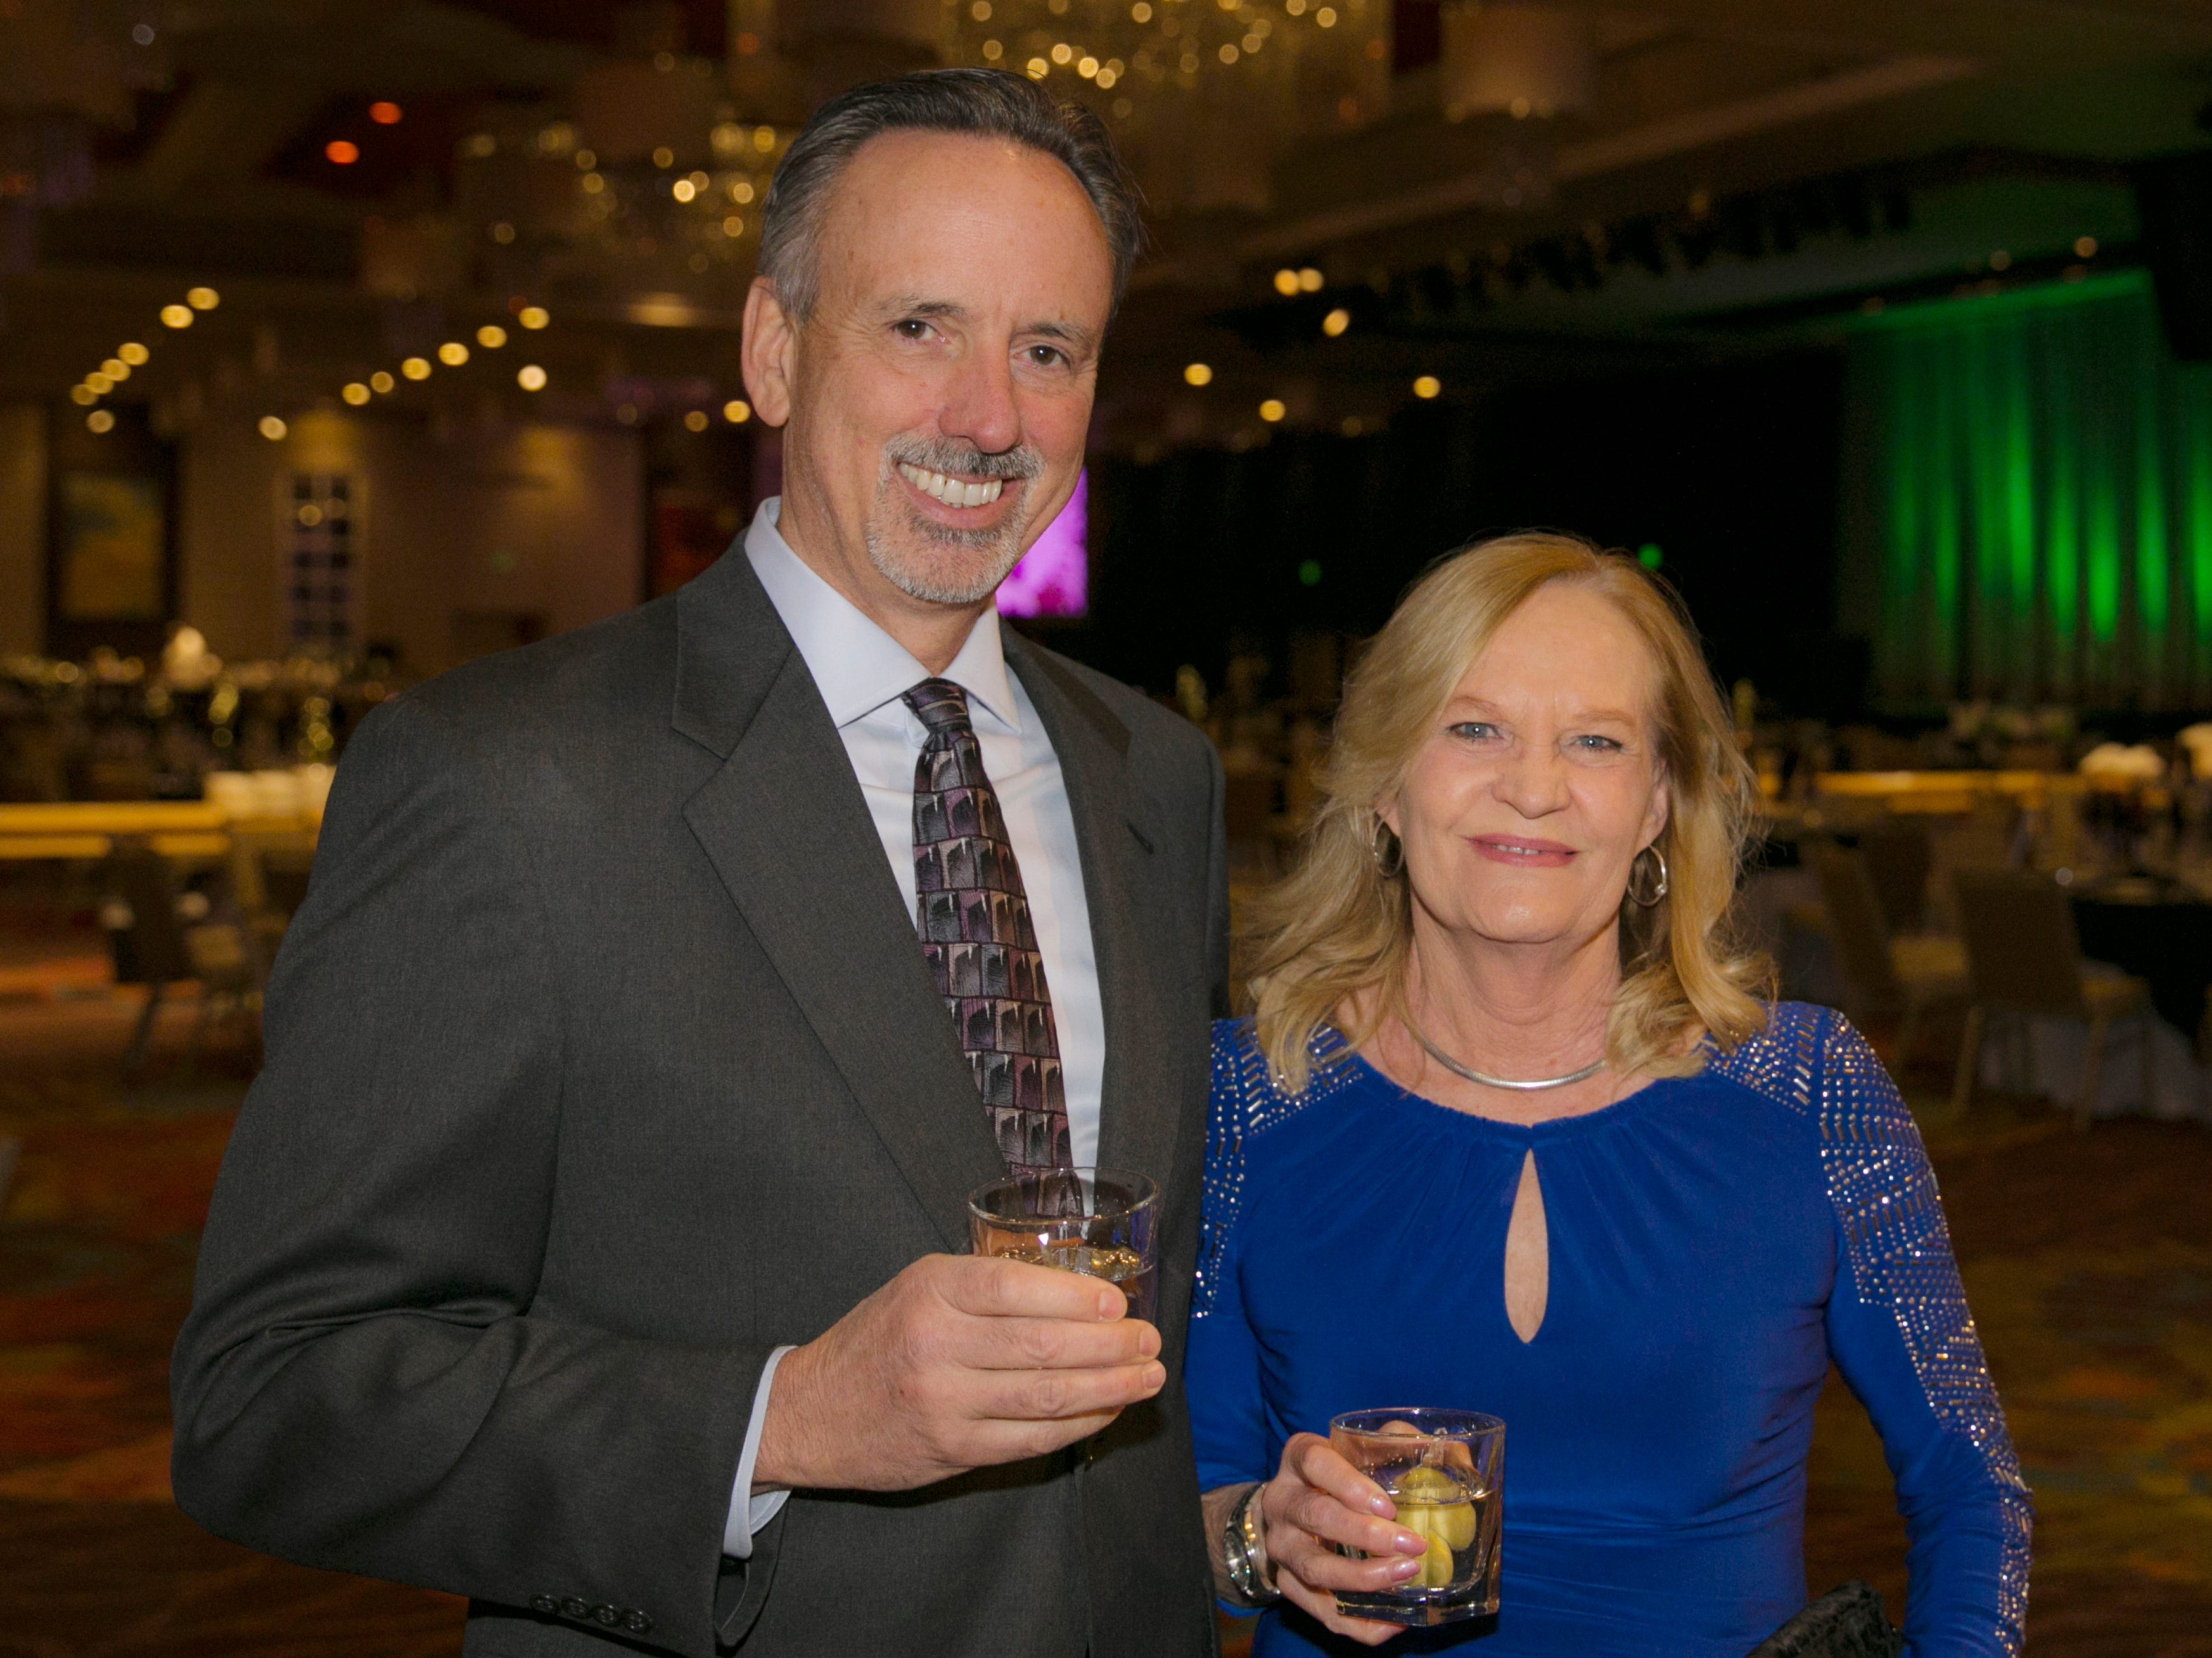 Brian Haus and Gale Kraft during Big Chefs Big Gala at the Grand Sierra Resort in Reno, Nevada on Saturday, April 13, 2019.